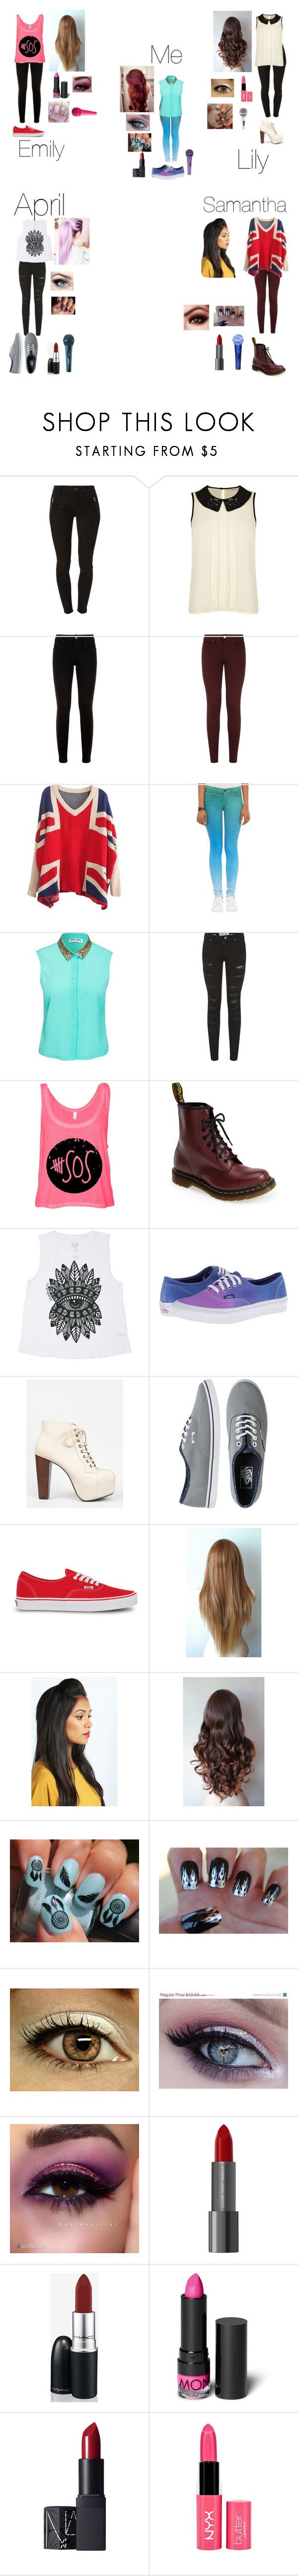 """""""Me and my band members performing Jimmy Fallon"""" by nikolestyles ❤ liked on Polyvore featuring Hudson, Darling, Monsoon, dVb Victoria Beckham, J Brand, Vero Moda, Parisian, Dr. Martens, Billabong and Vans"""